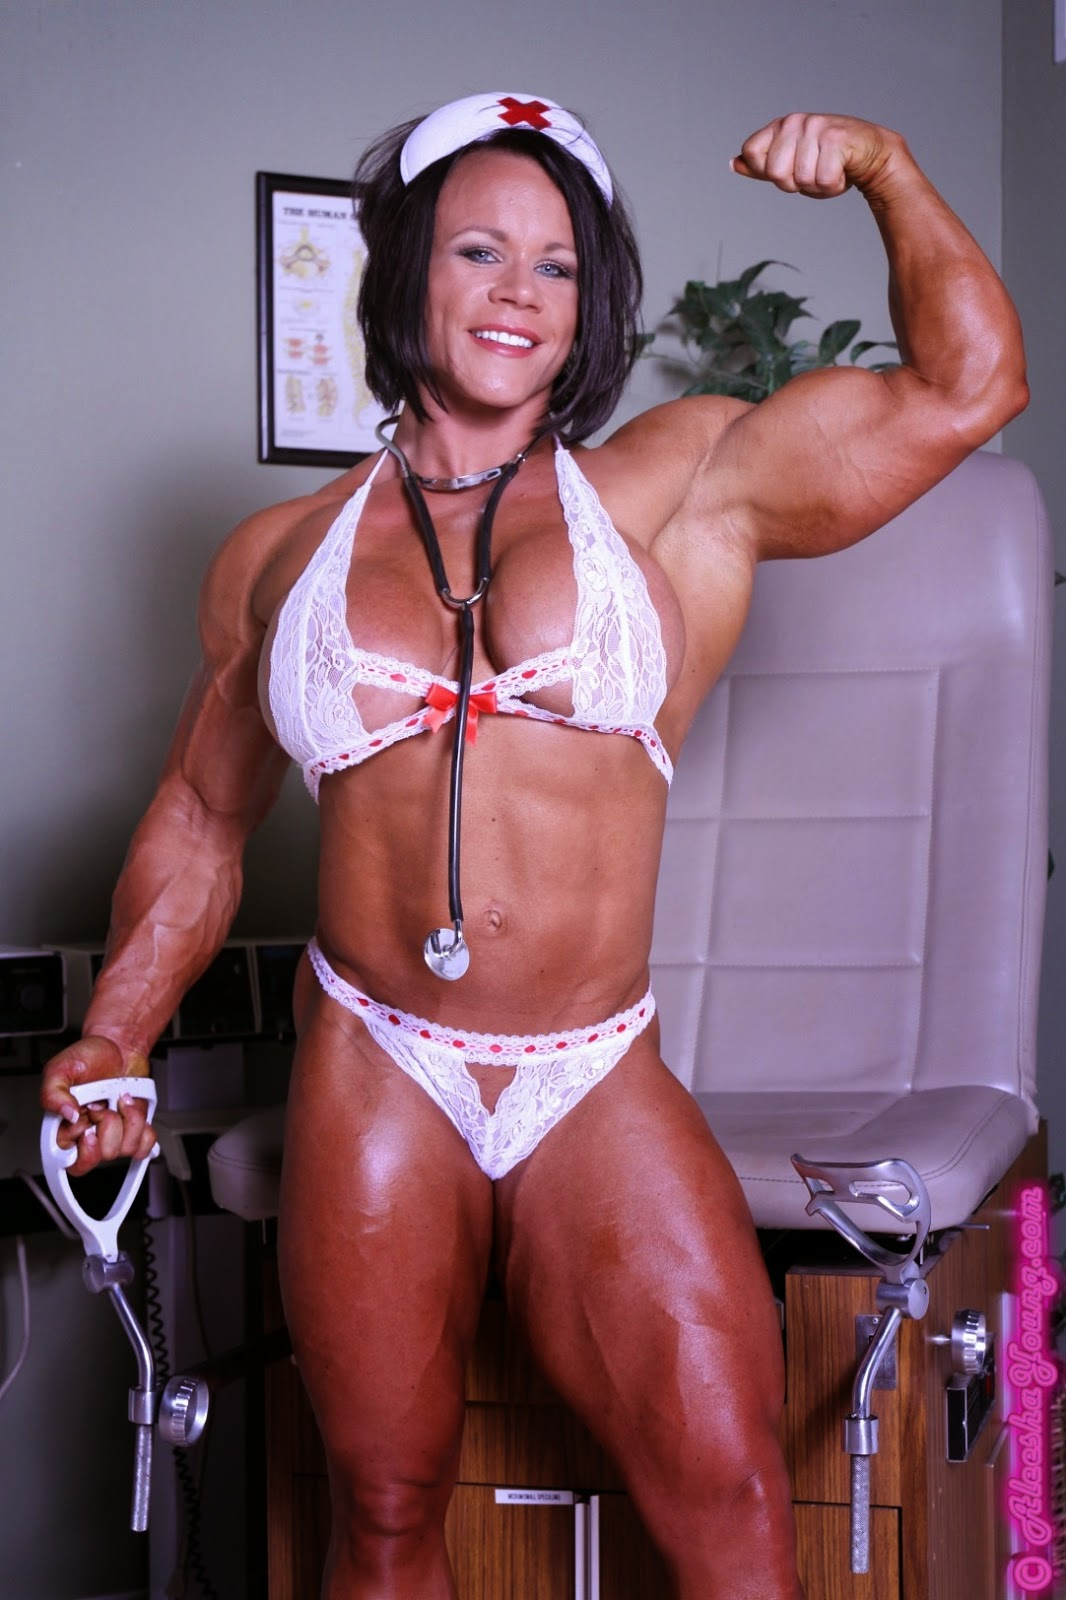 Free video muscle woman sexy images